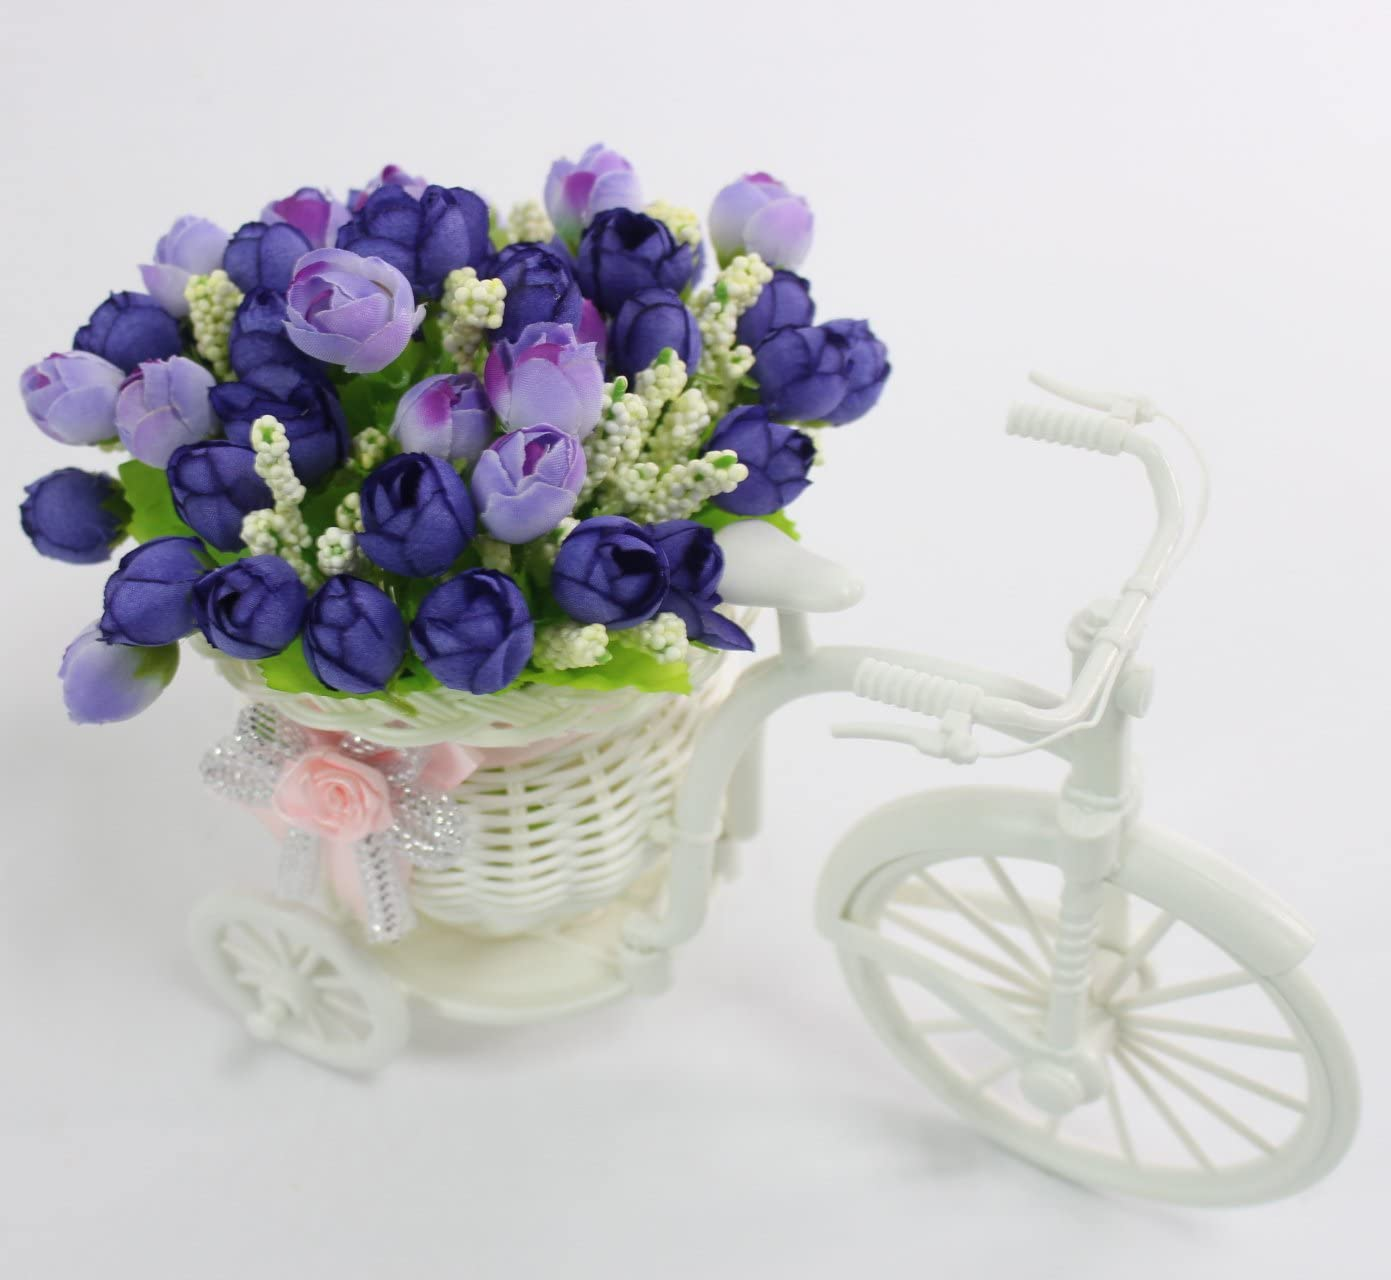 JAROWN Nostalgic Bicycle Plant Stand Artificial Rose Silk Flowers Hand-Woven Baskets Mini Garden for Home Decoration Autumn red